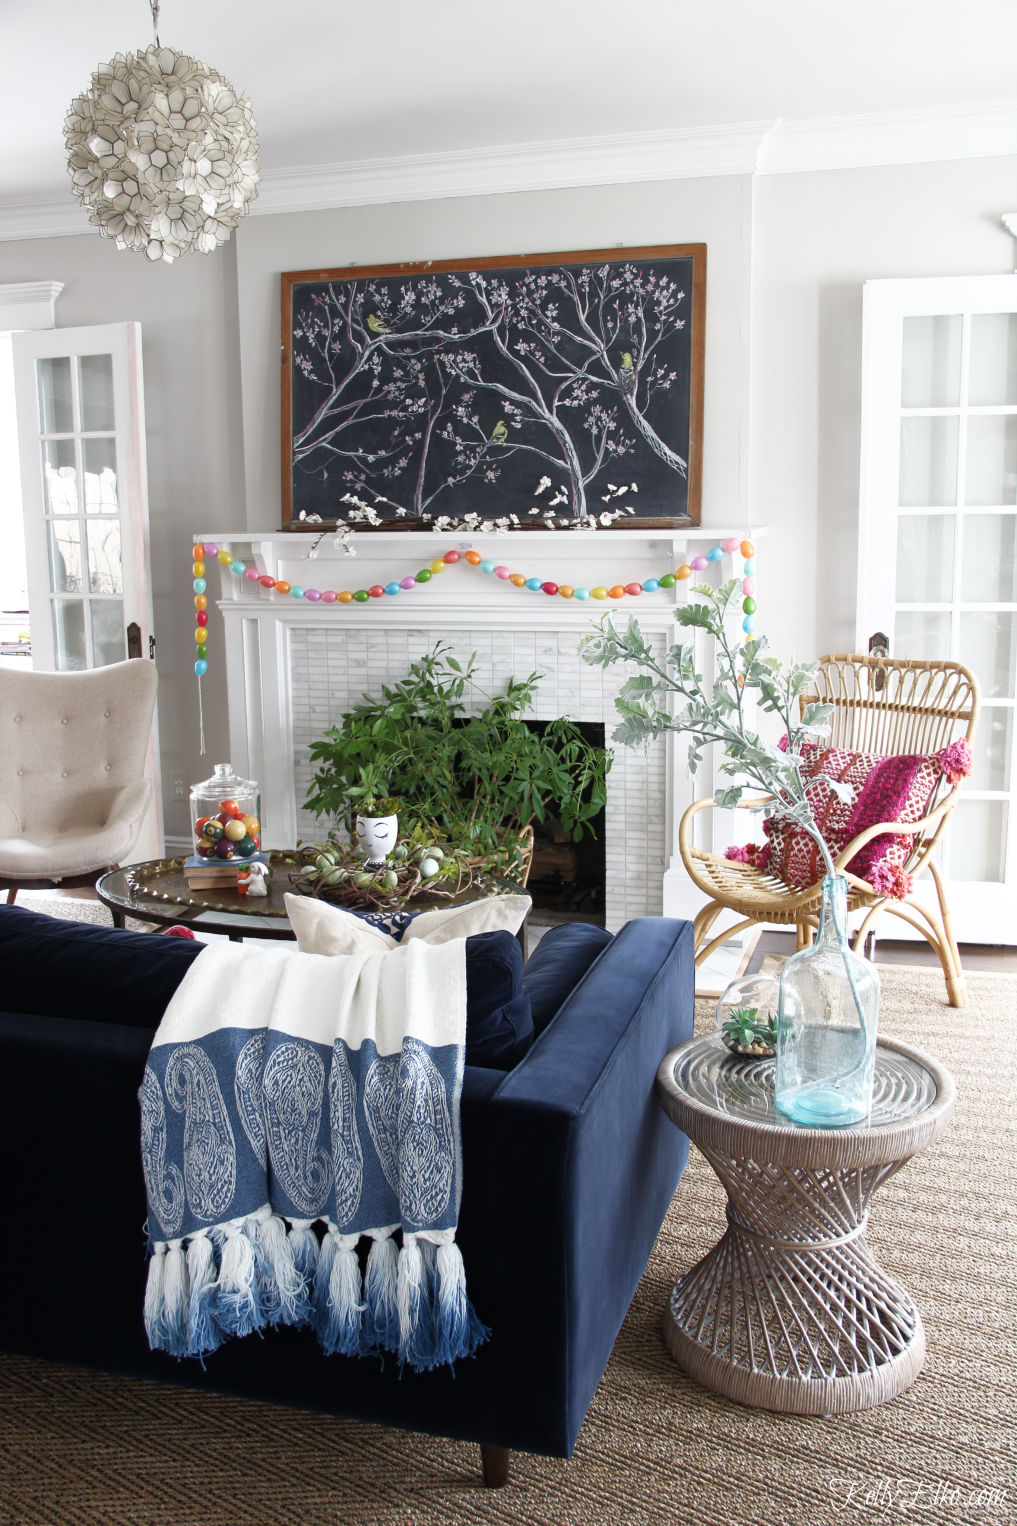 Love this spring living room with giant chalkboard art mantel and egg garland kellyelko.com #livingroom #livingroomdecor #springmantel #springdecor #easterdecor #easter #diycrafts #springcrafts #mantel #manteldecor #bohodecor #lighting #indoorplants #chalkboard #farmhousedecor